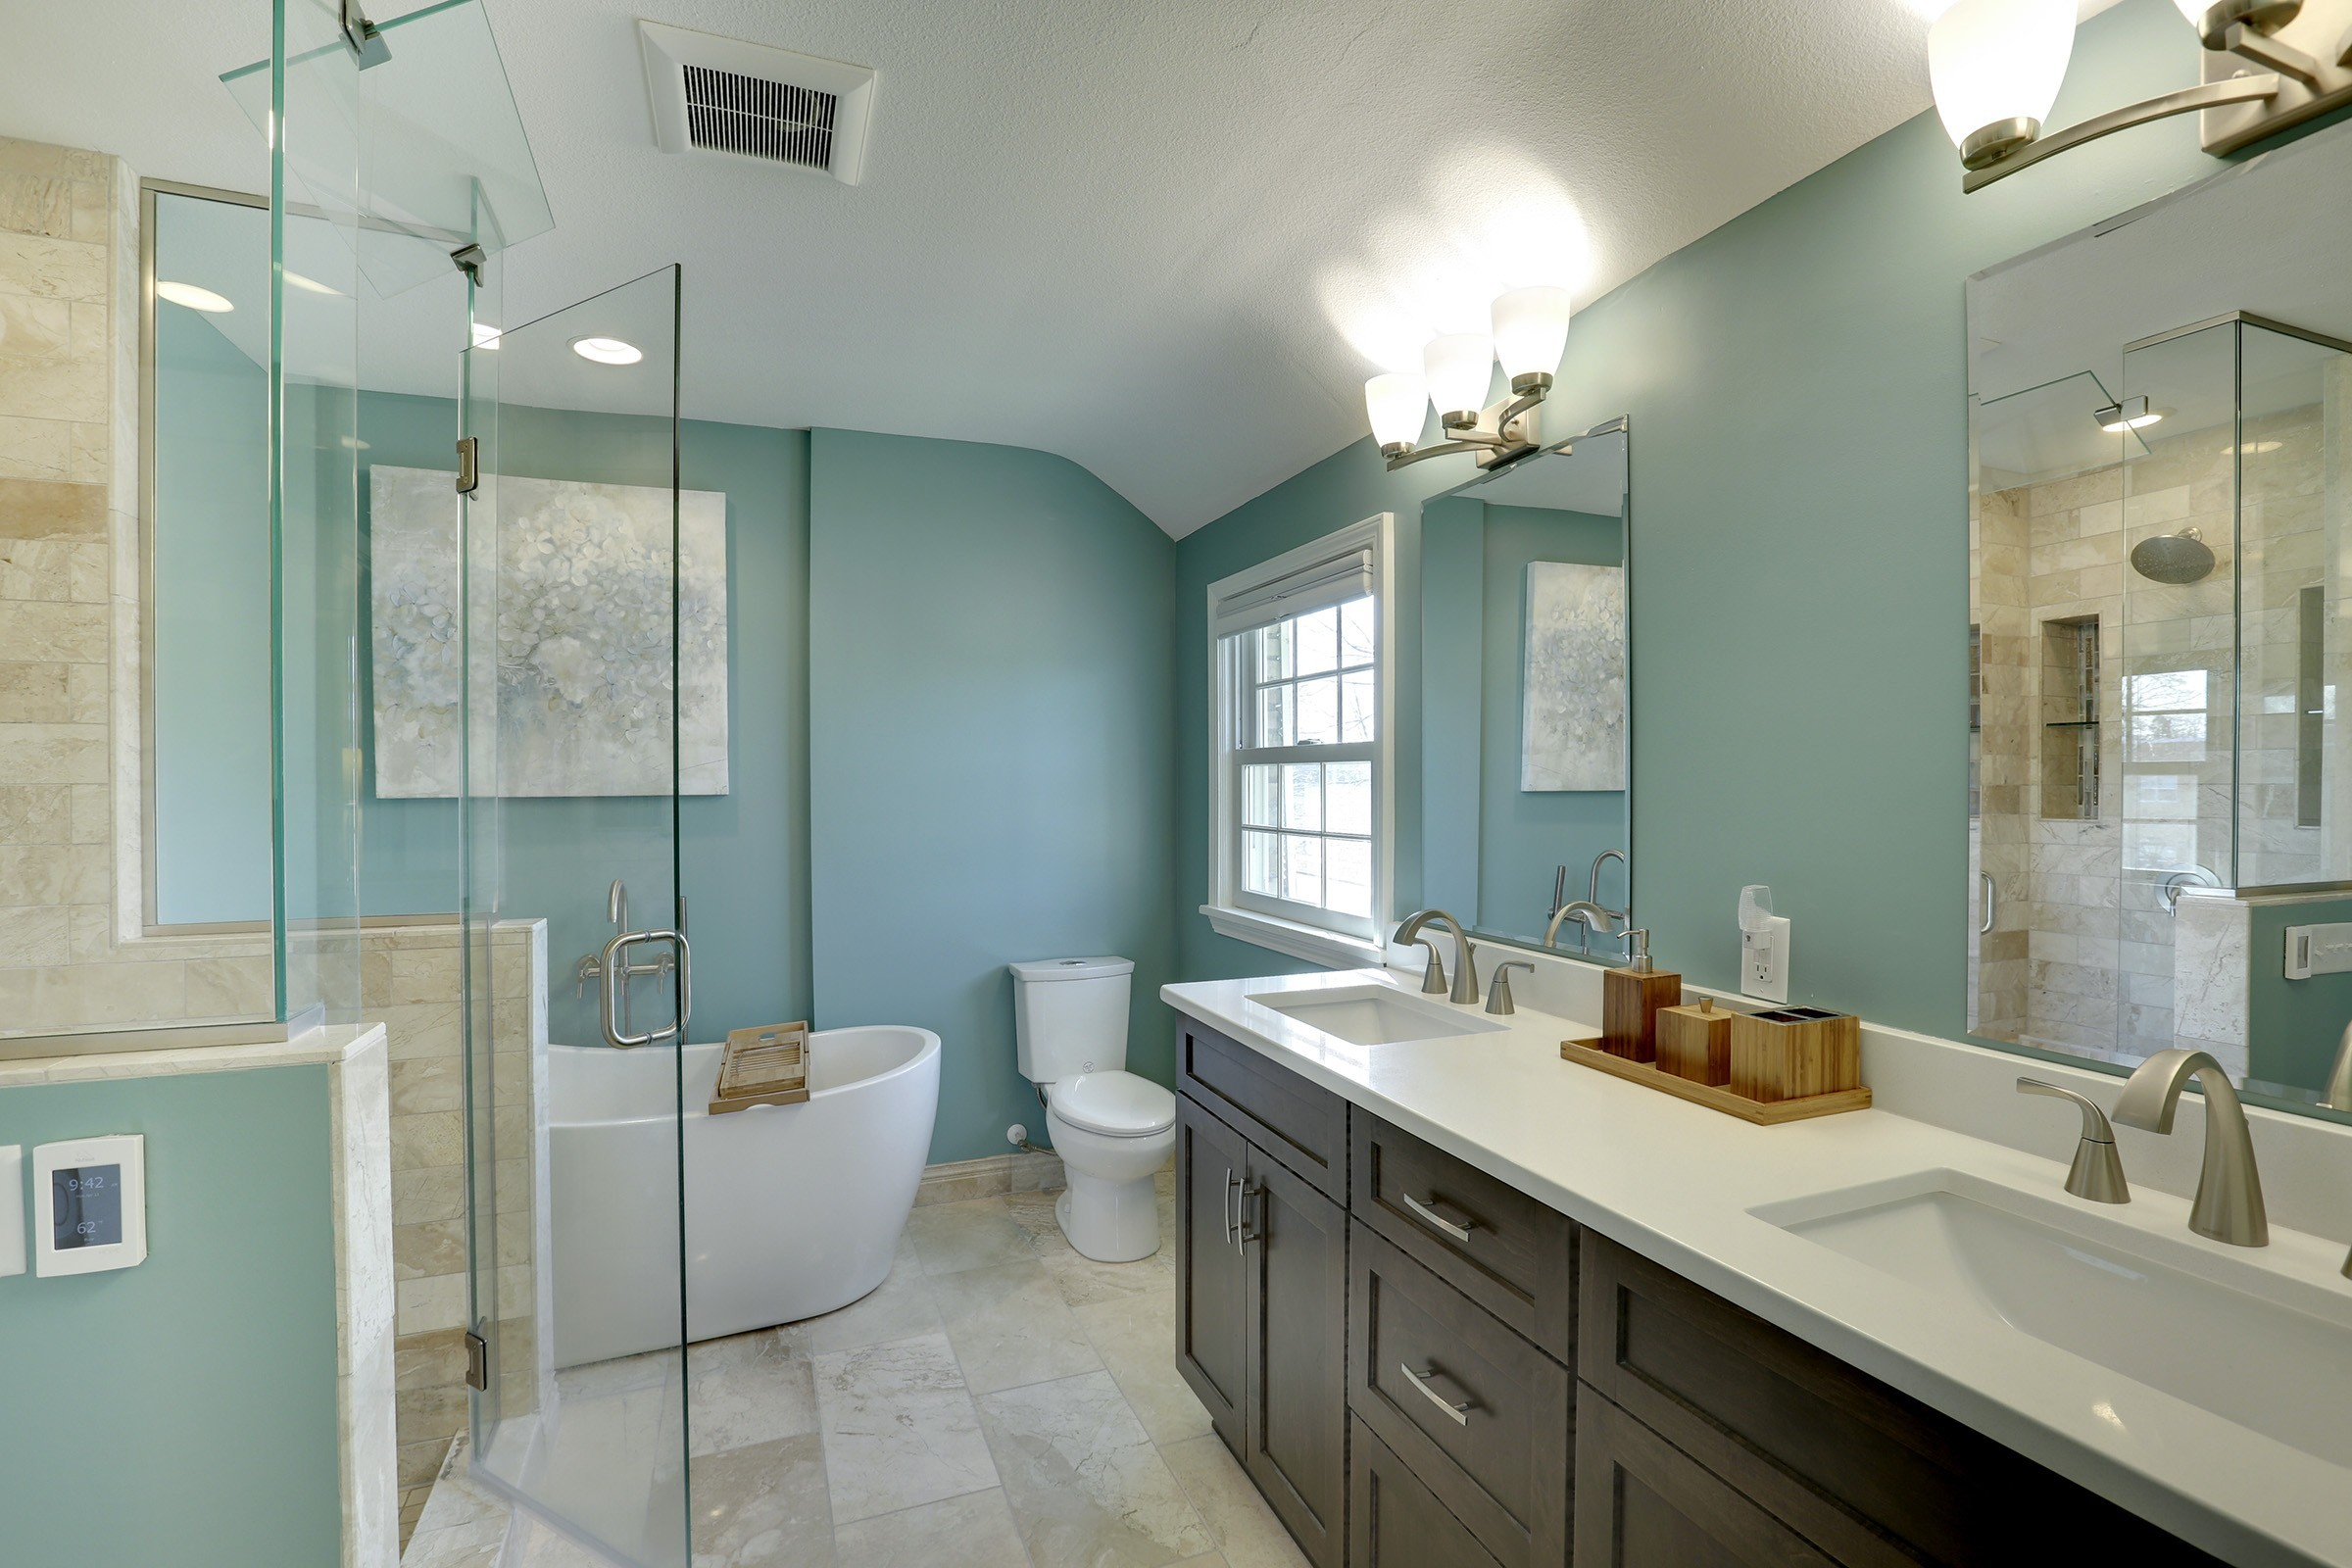 9 Awesome Designs For Bathroom Vanity Sinks Home